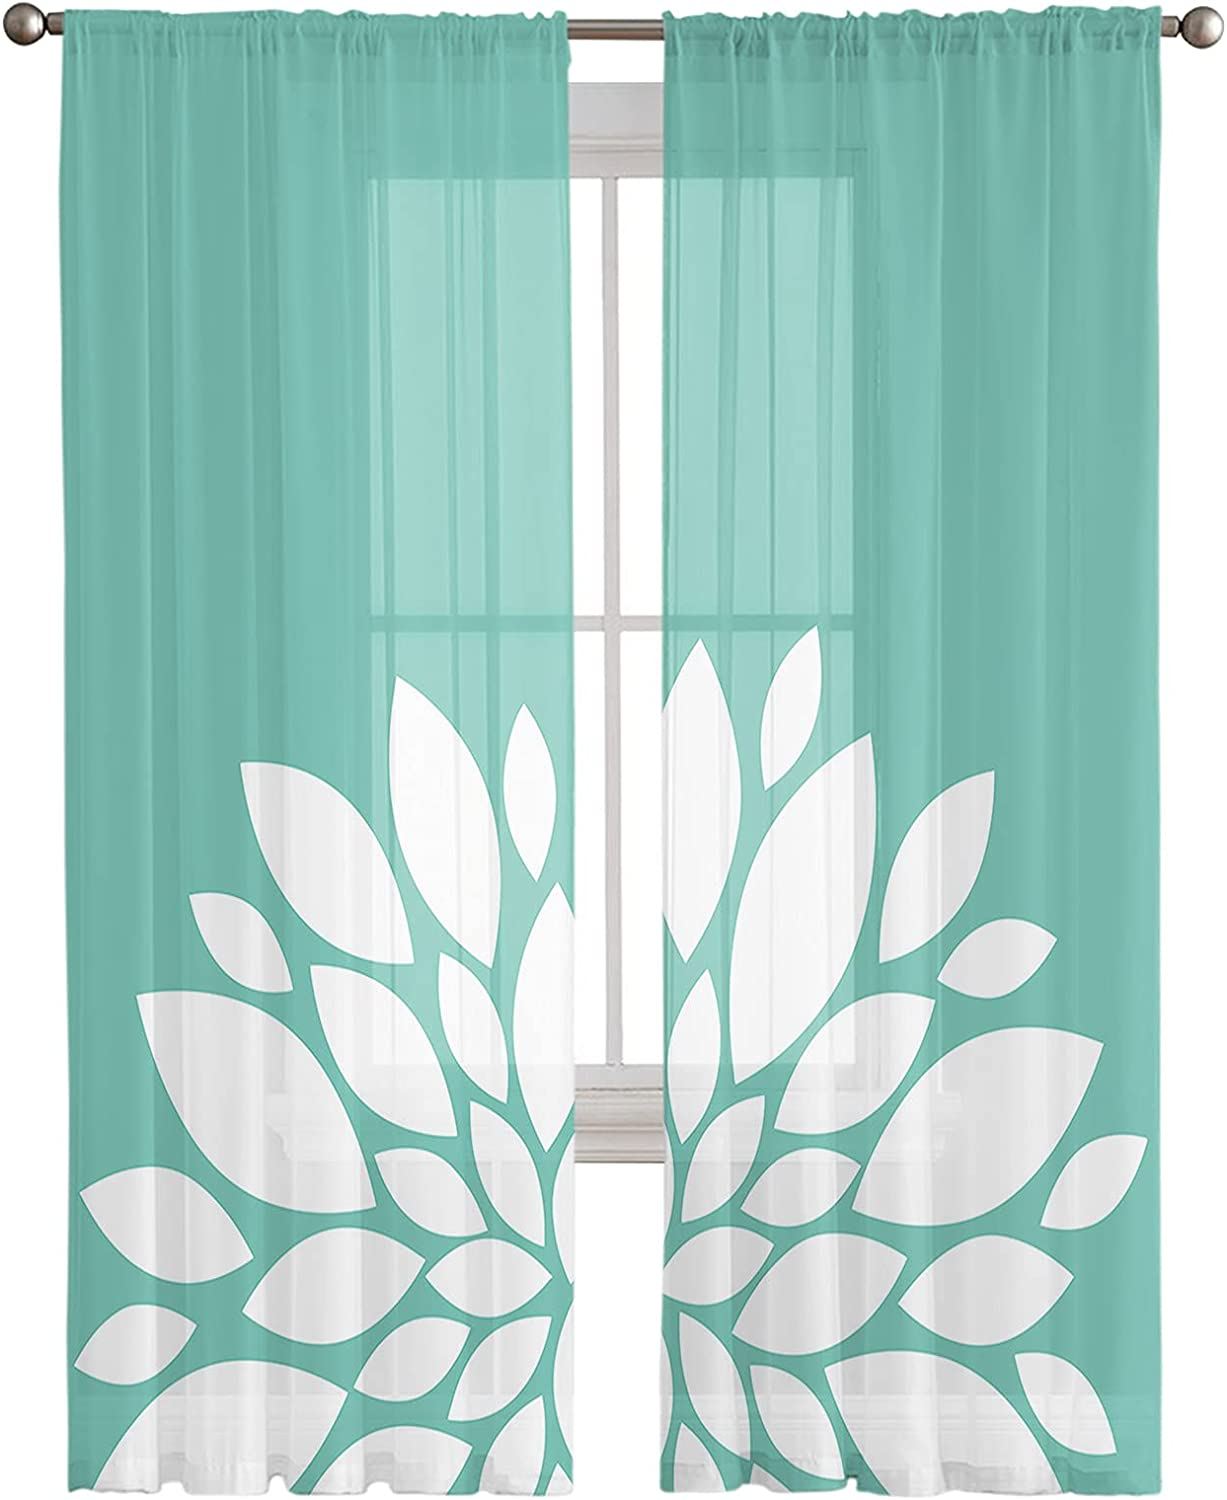 2021 Dahlia Sheer Curtains 2 Panels Window S Drapes Sale Special Price Pocket with Rod